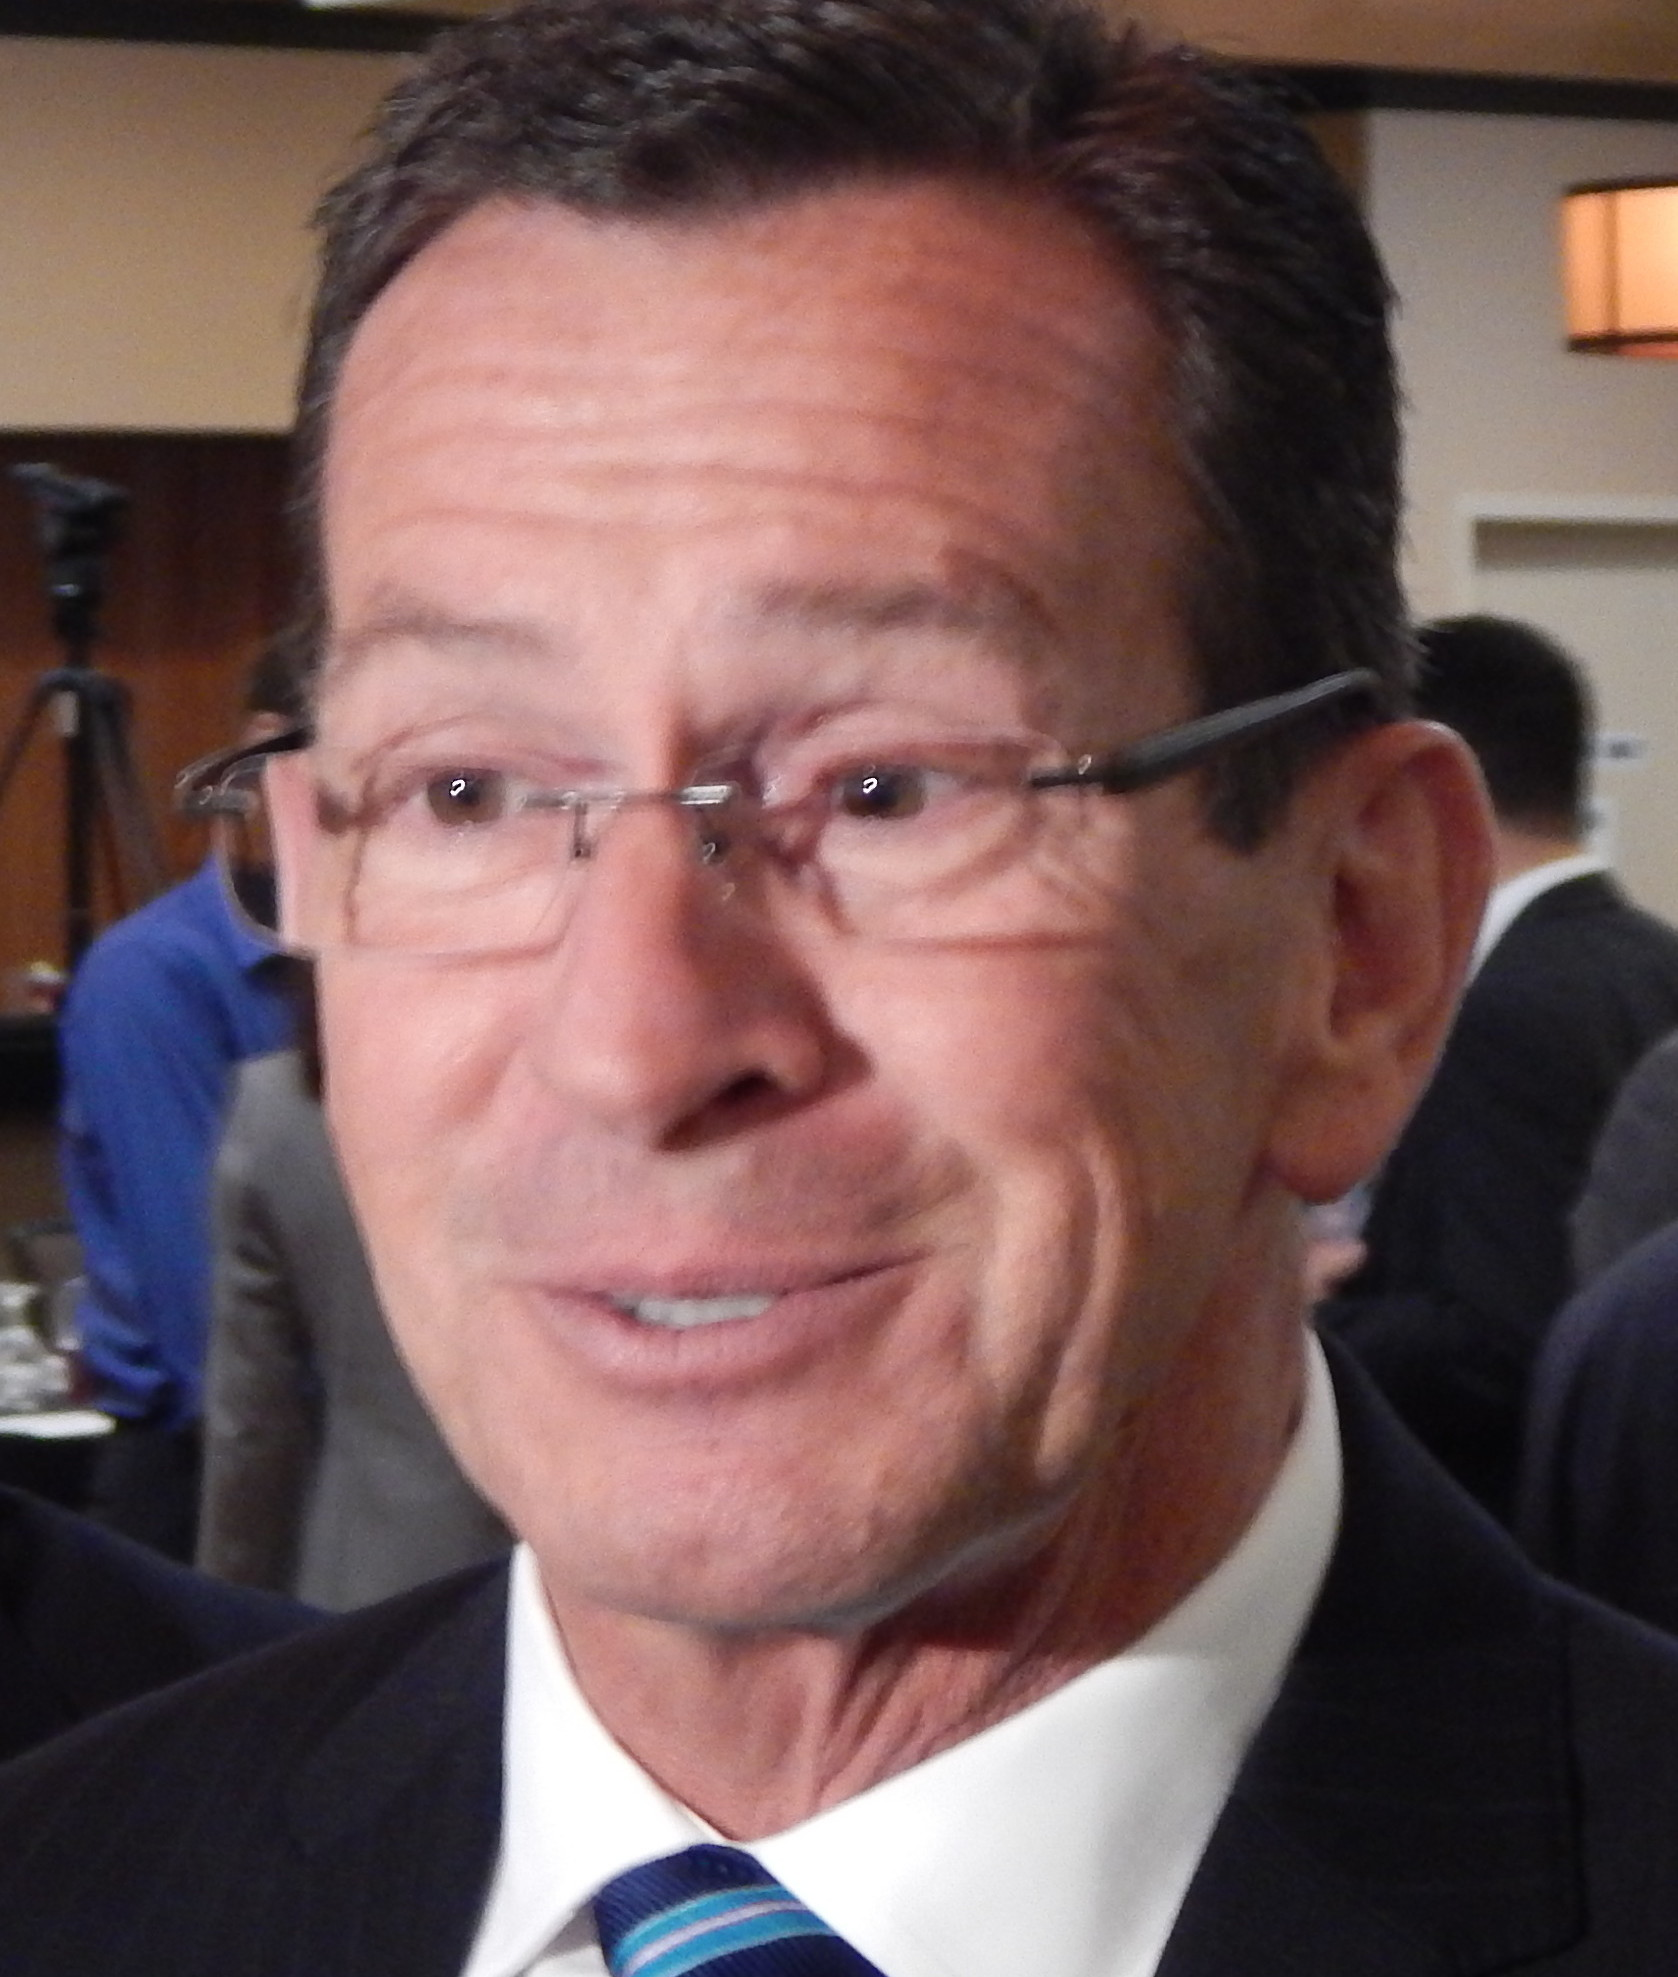 In TV wars, Malloy pivots from attacks to a tiny confession